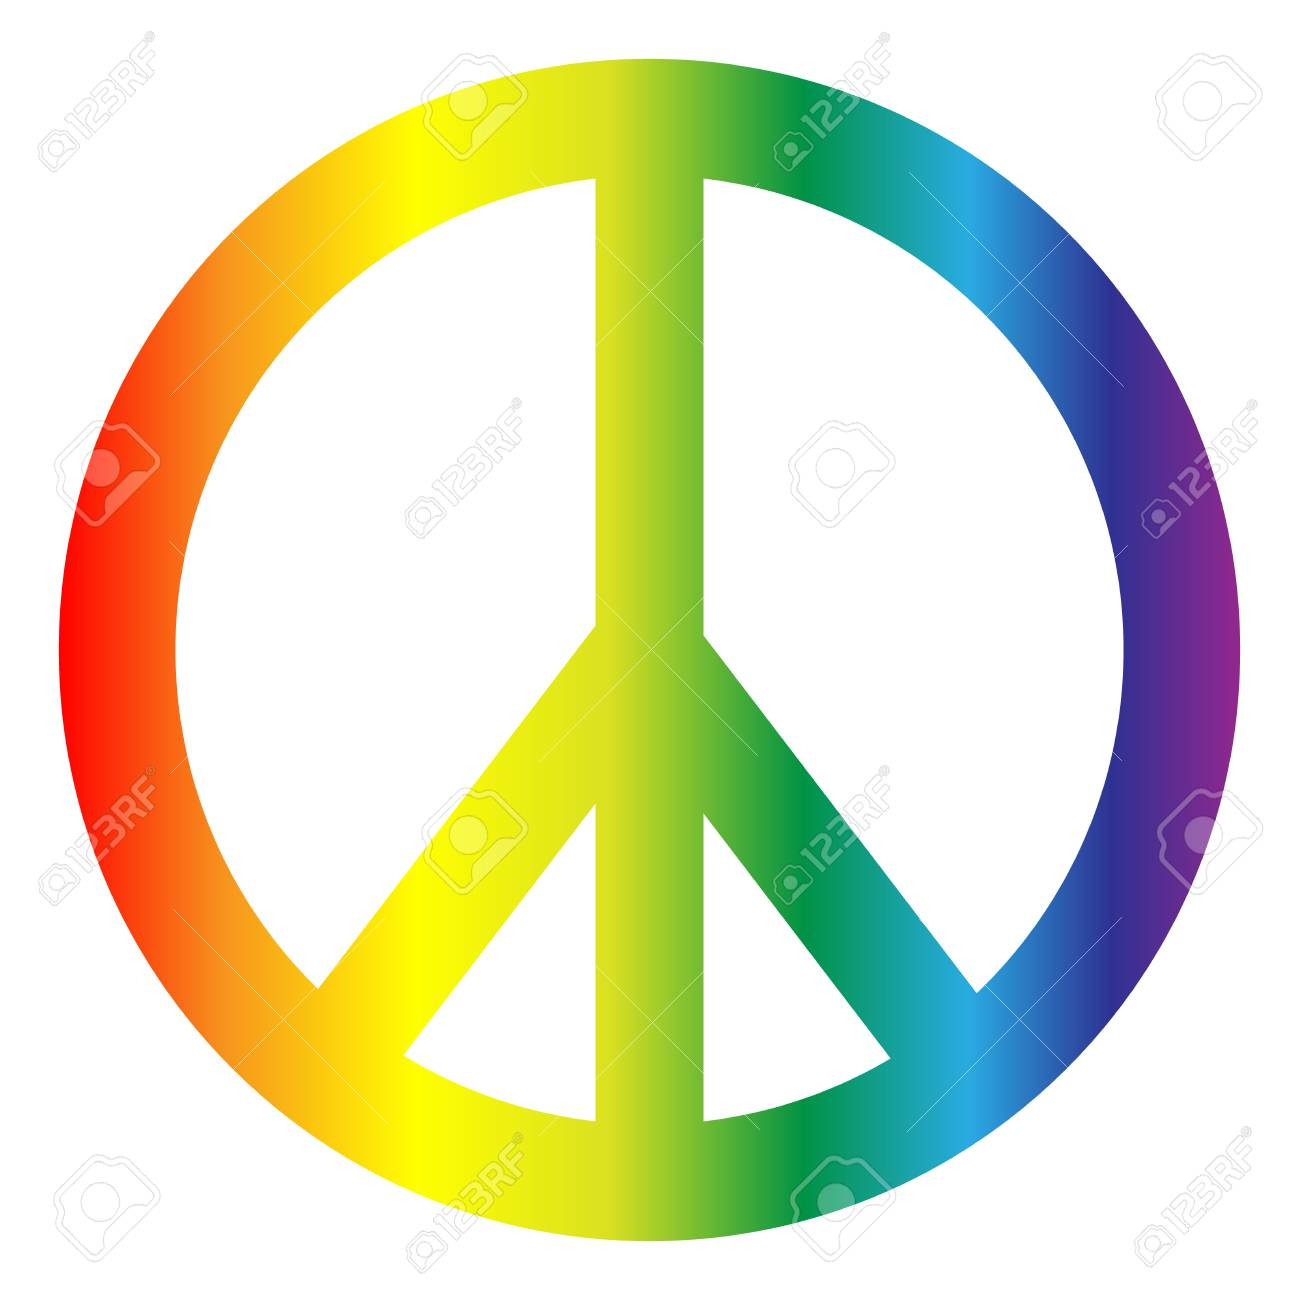 Peace symbol in rainbow colors isolated on white background. - 125665910